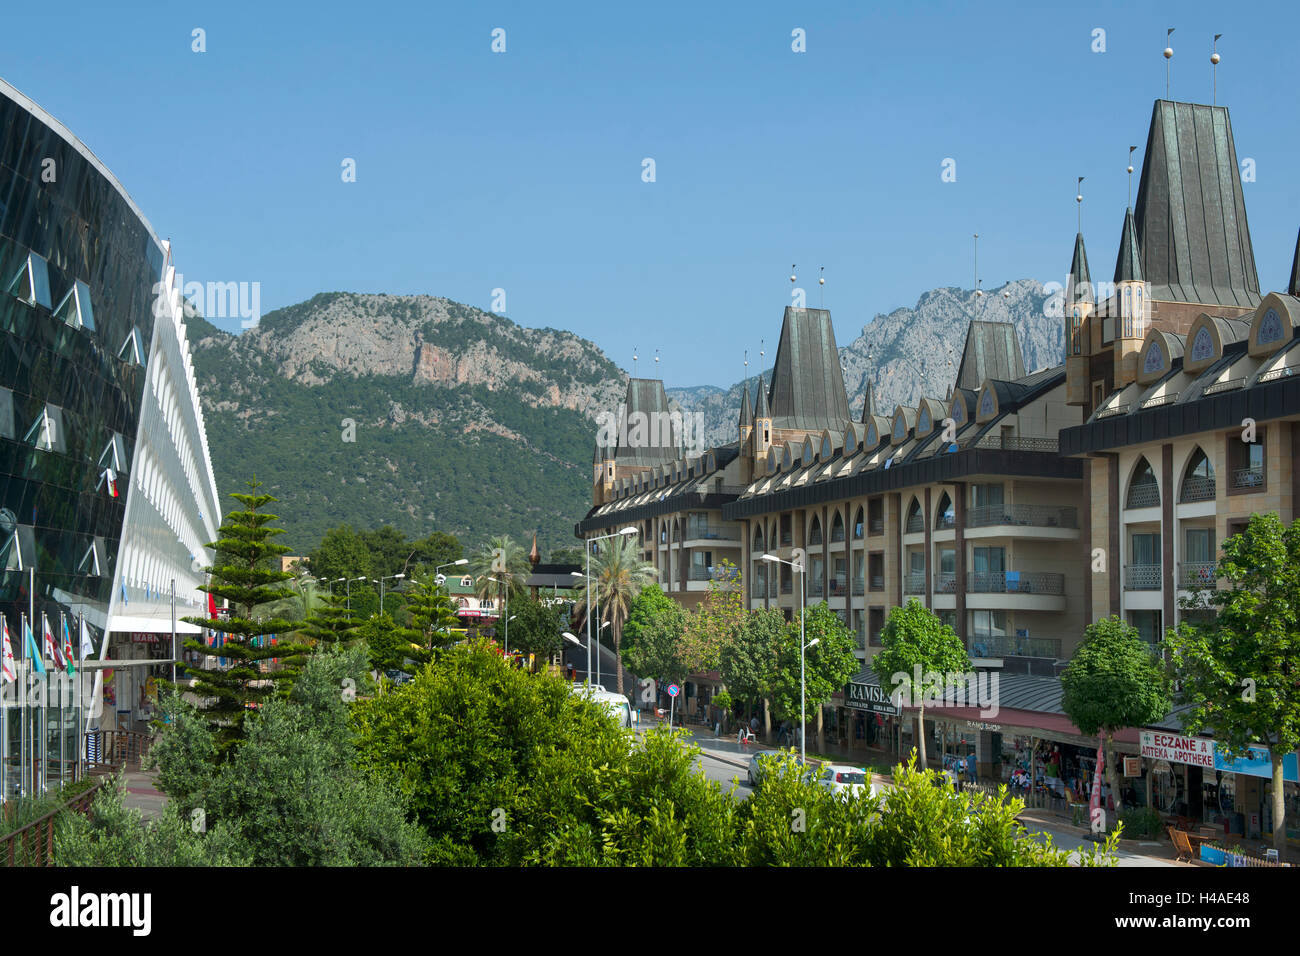 Turkey, Göynük with Kemer, Queen Elizabeth elite suite hotel and spa, - Stock Image